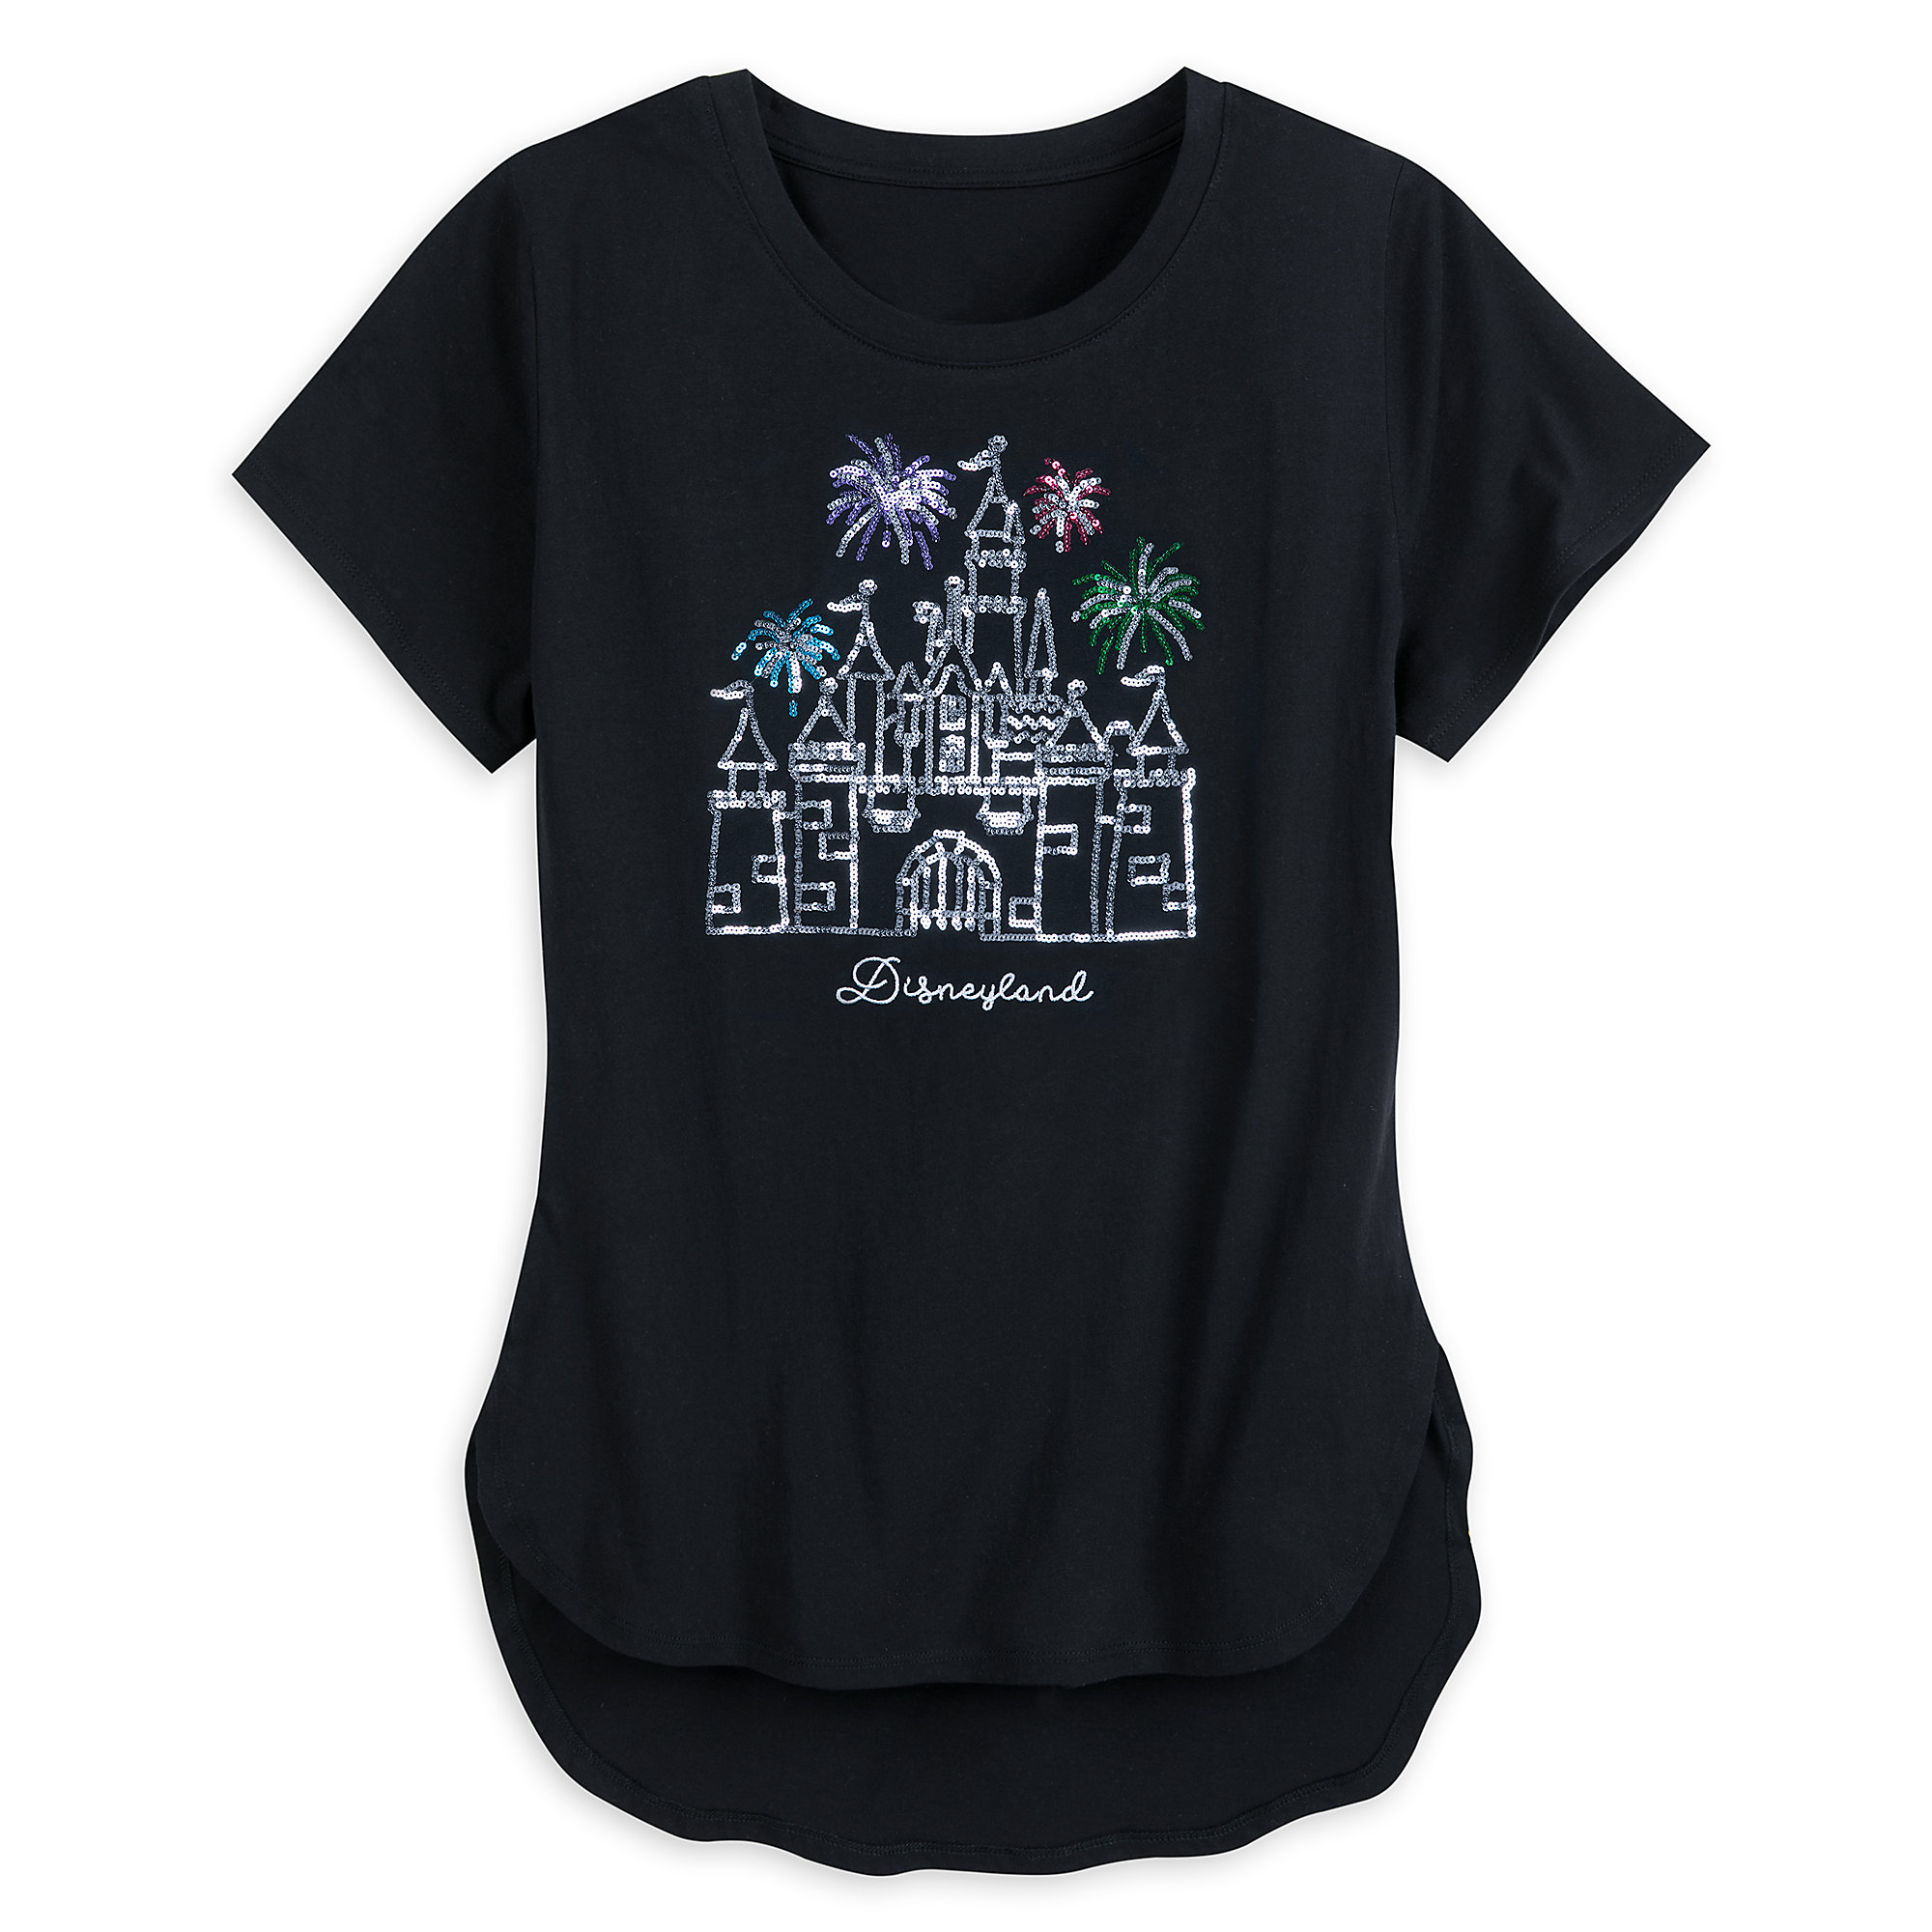 Sleeping Beauty Castle Sequined Fashion T-Shirt for Women - Disneyland